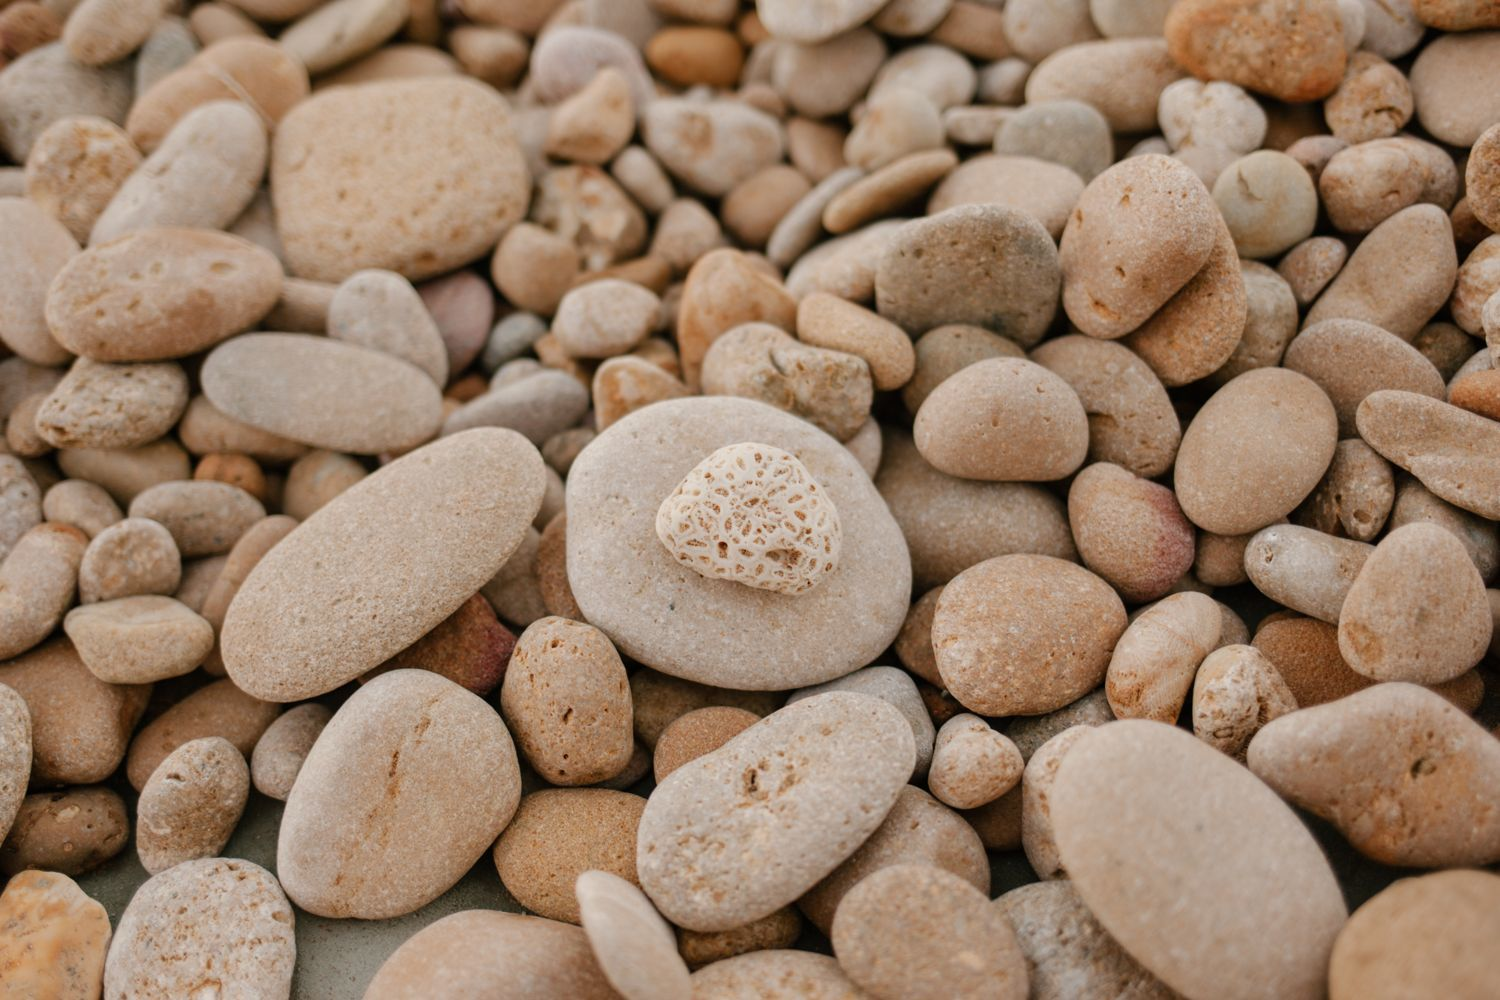 Ideal rocks for stone boiling